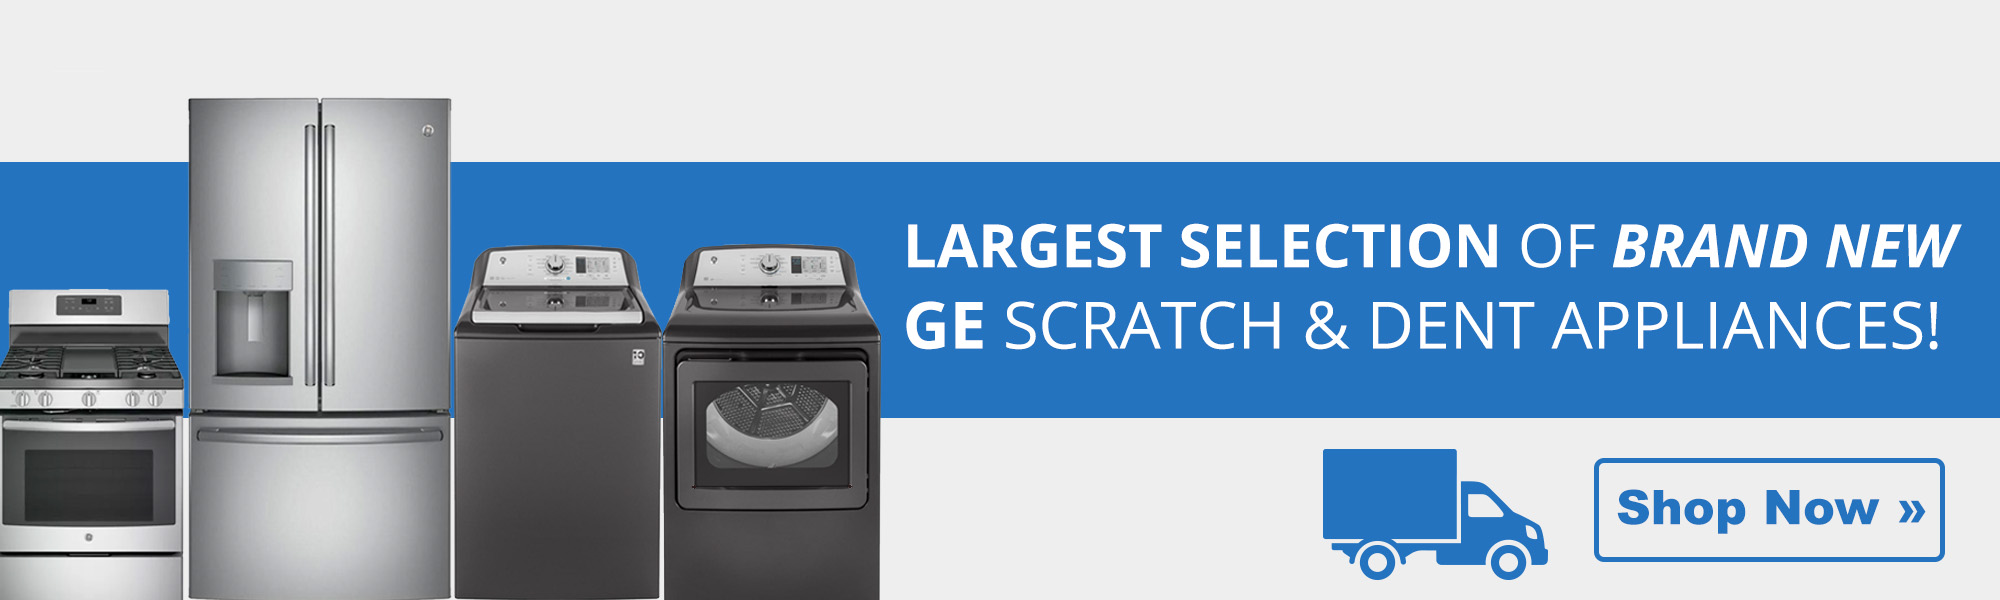 New GE Appliances and Scratch and Dent Outlet | Elwoods Appliance